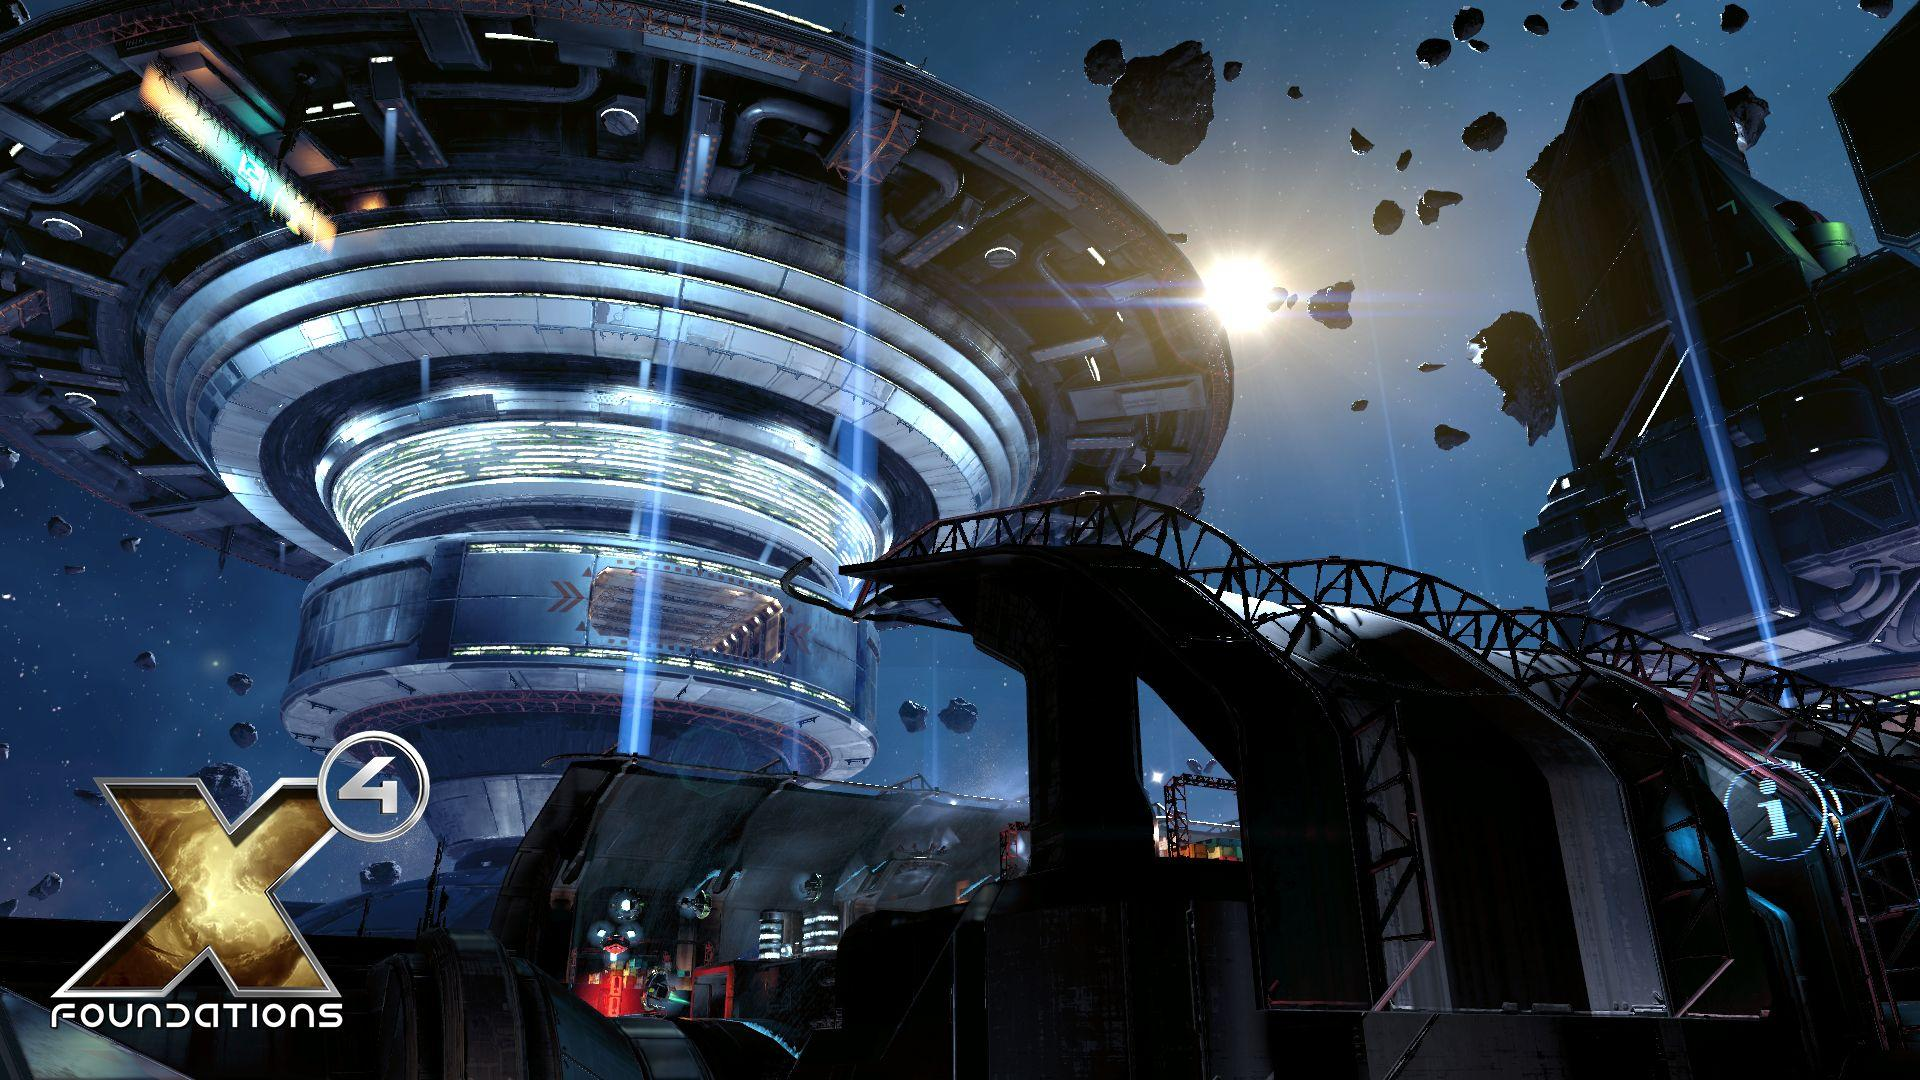 Weekly PC download charts: 'X4 Foundations' launches to